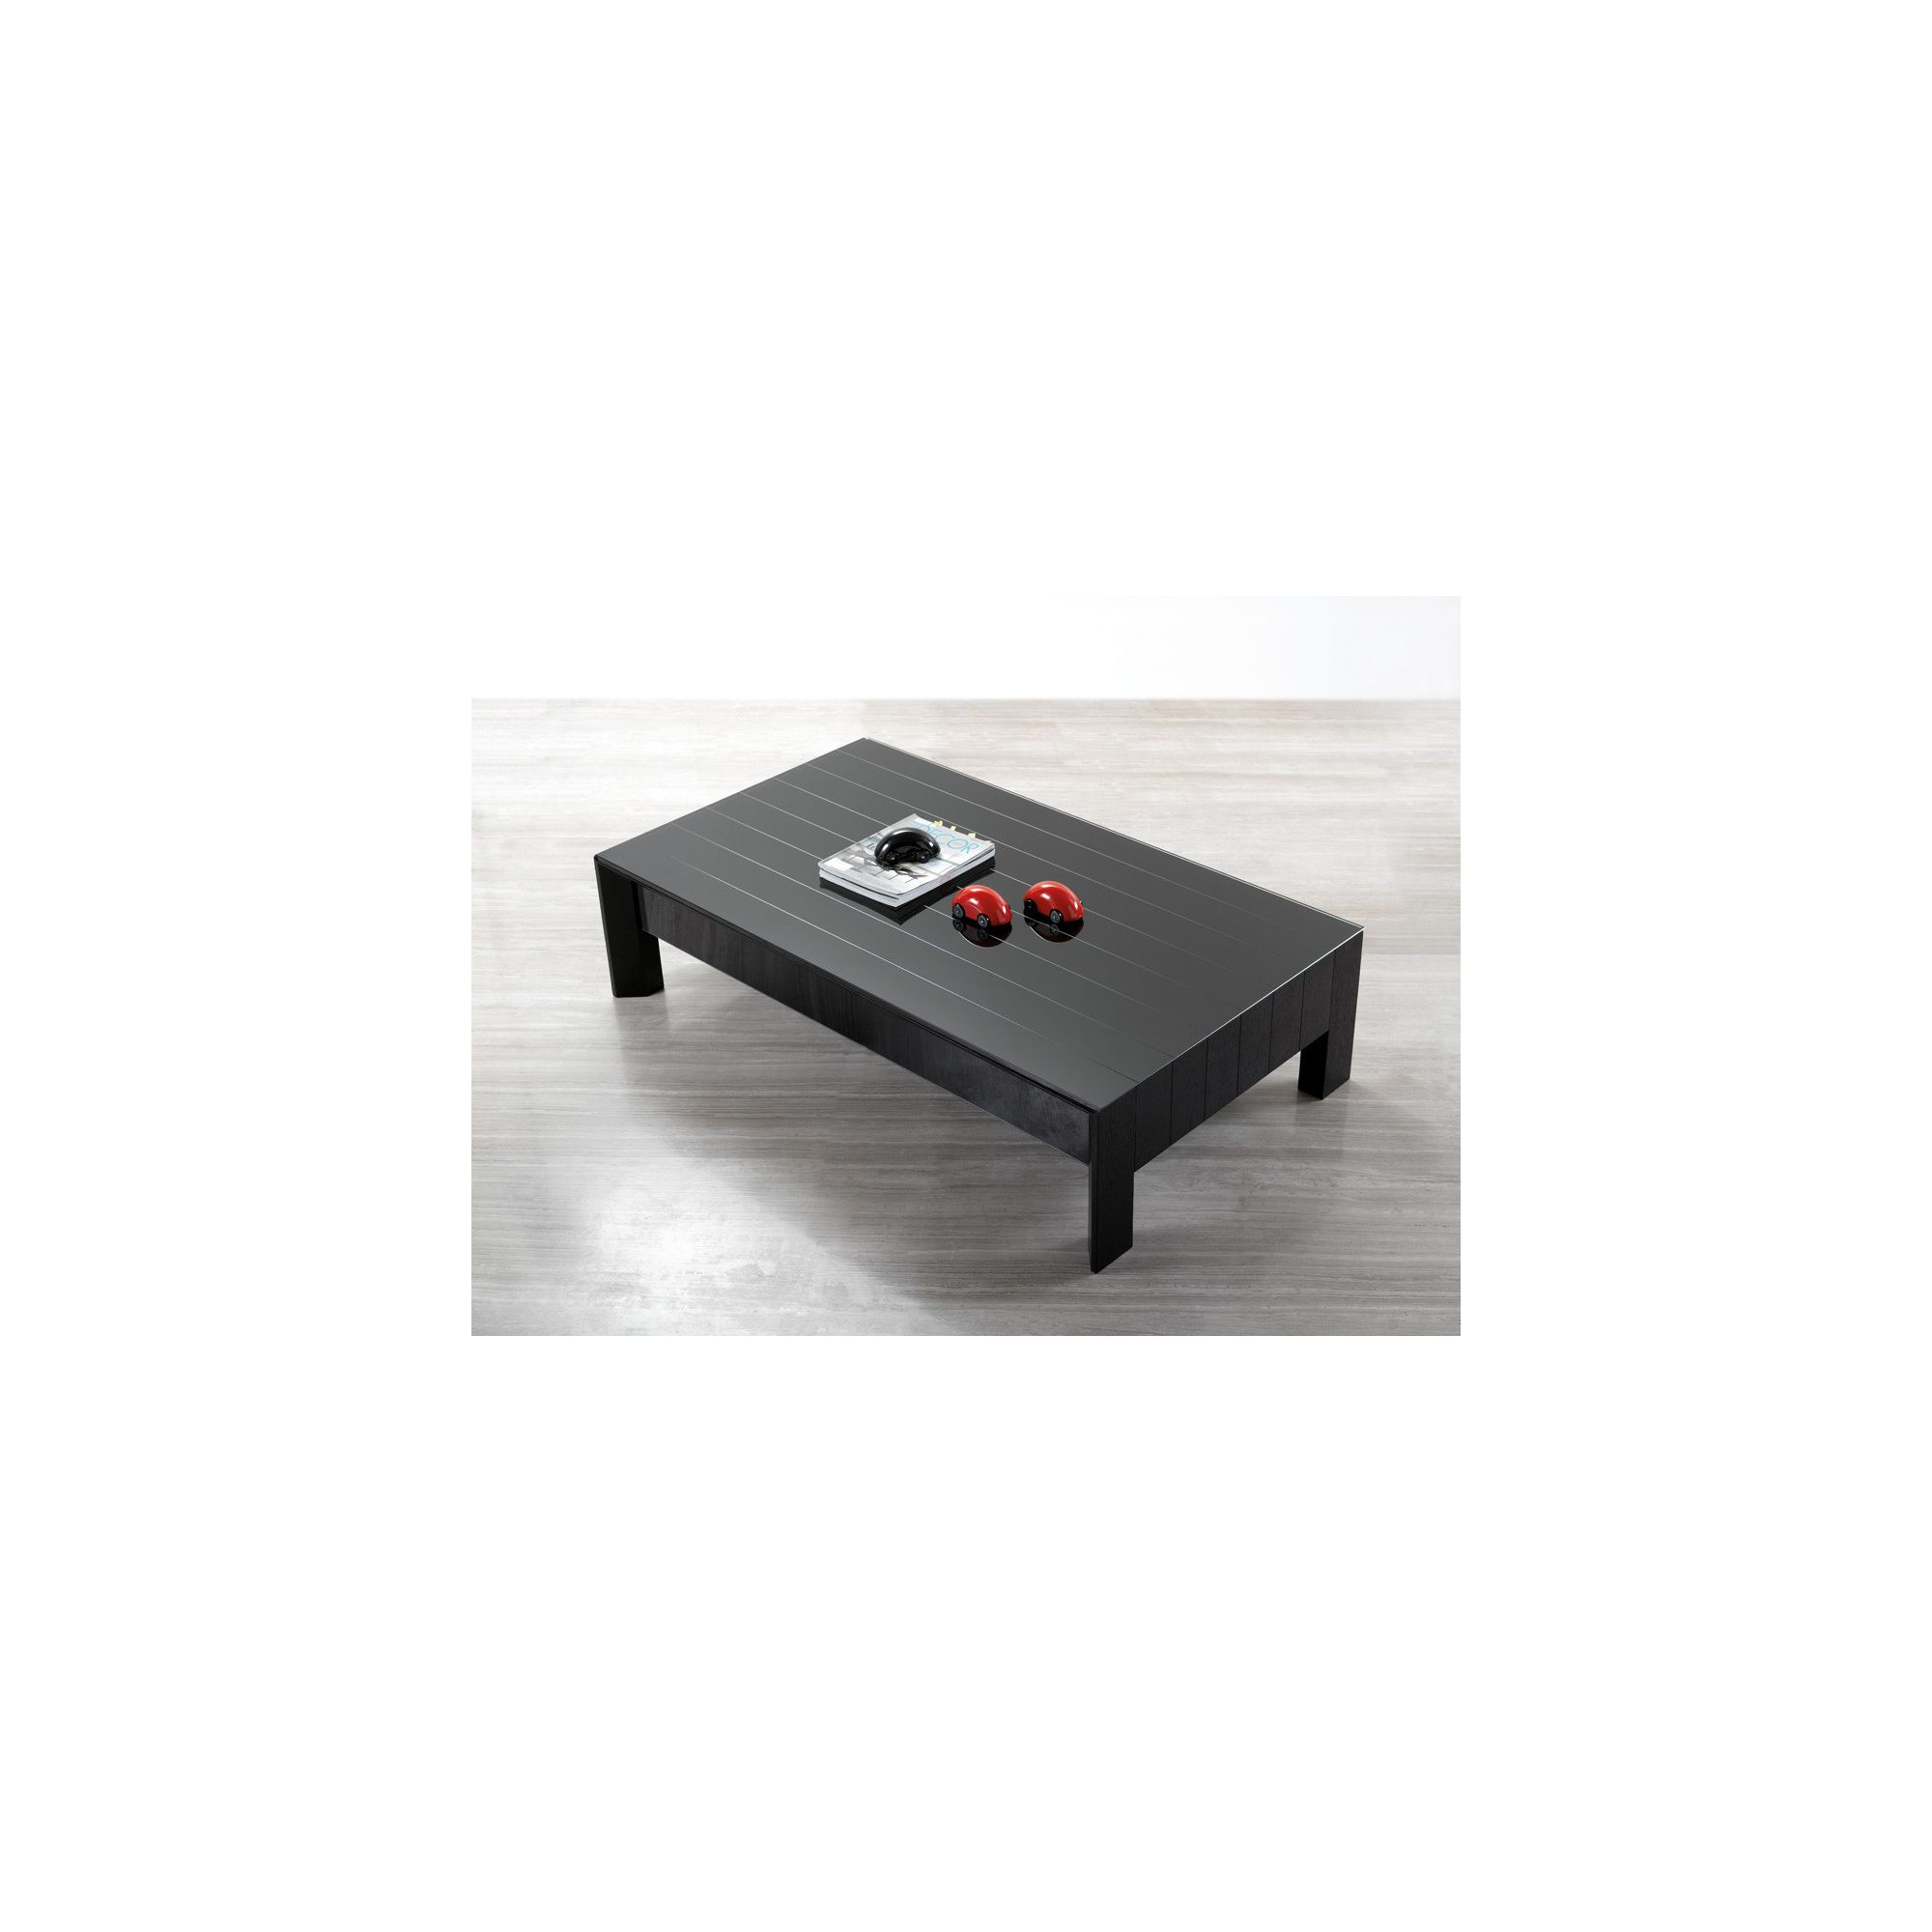 Solway Furniture Nevada Coffee Table at Tesco Direct